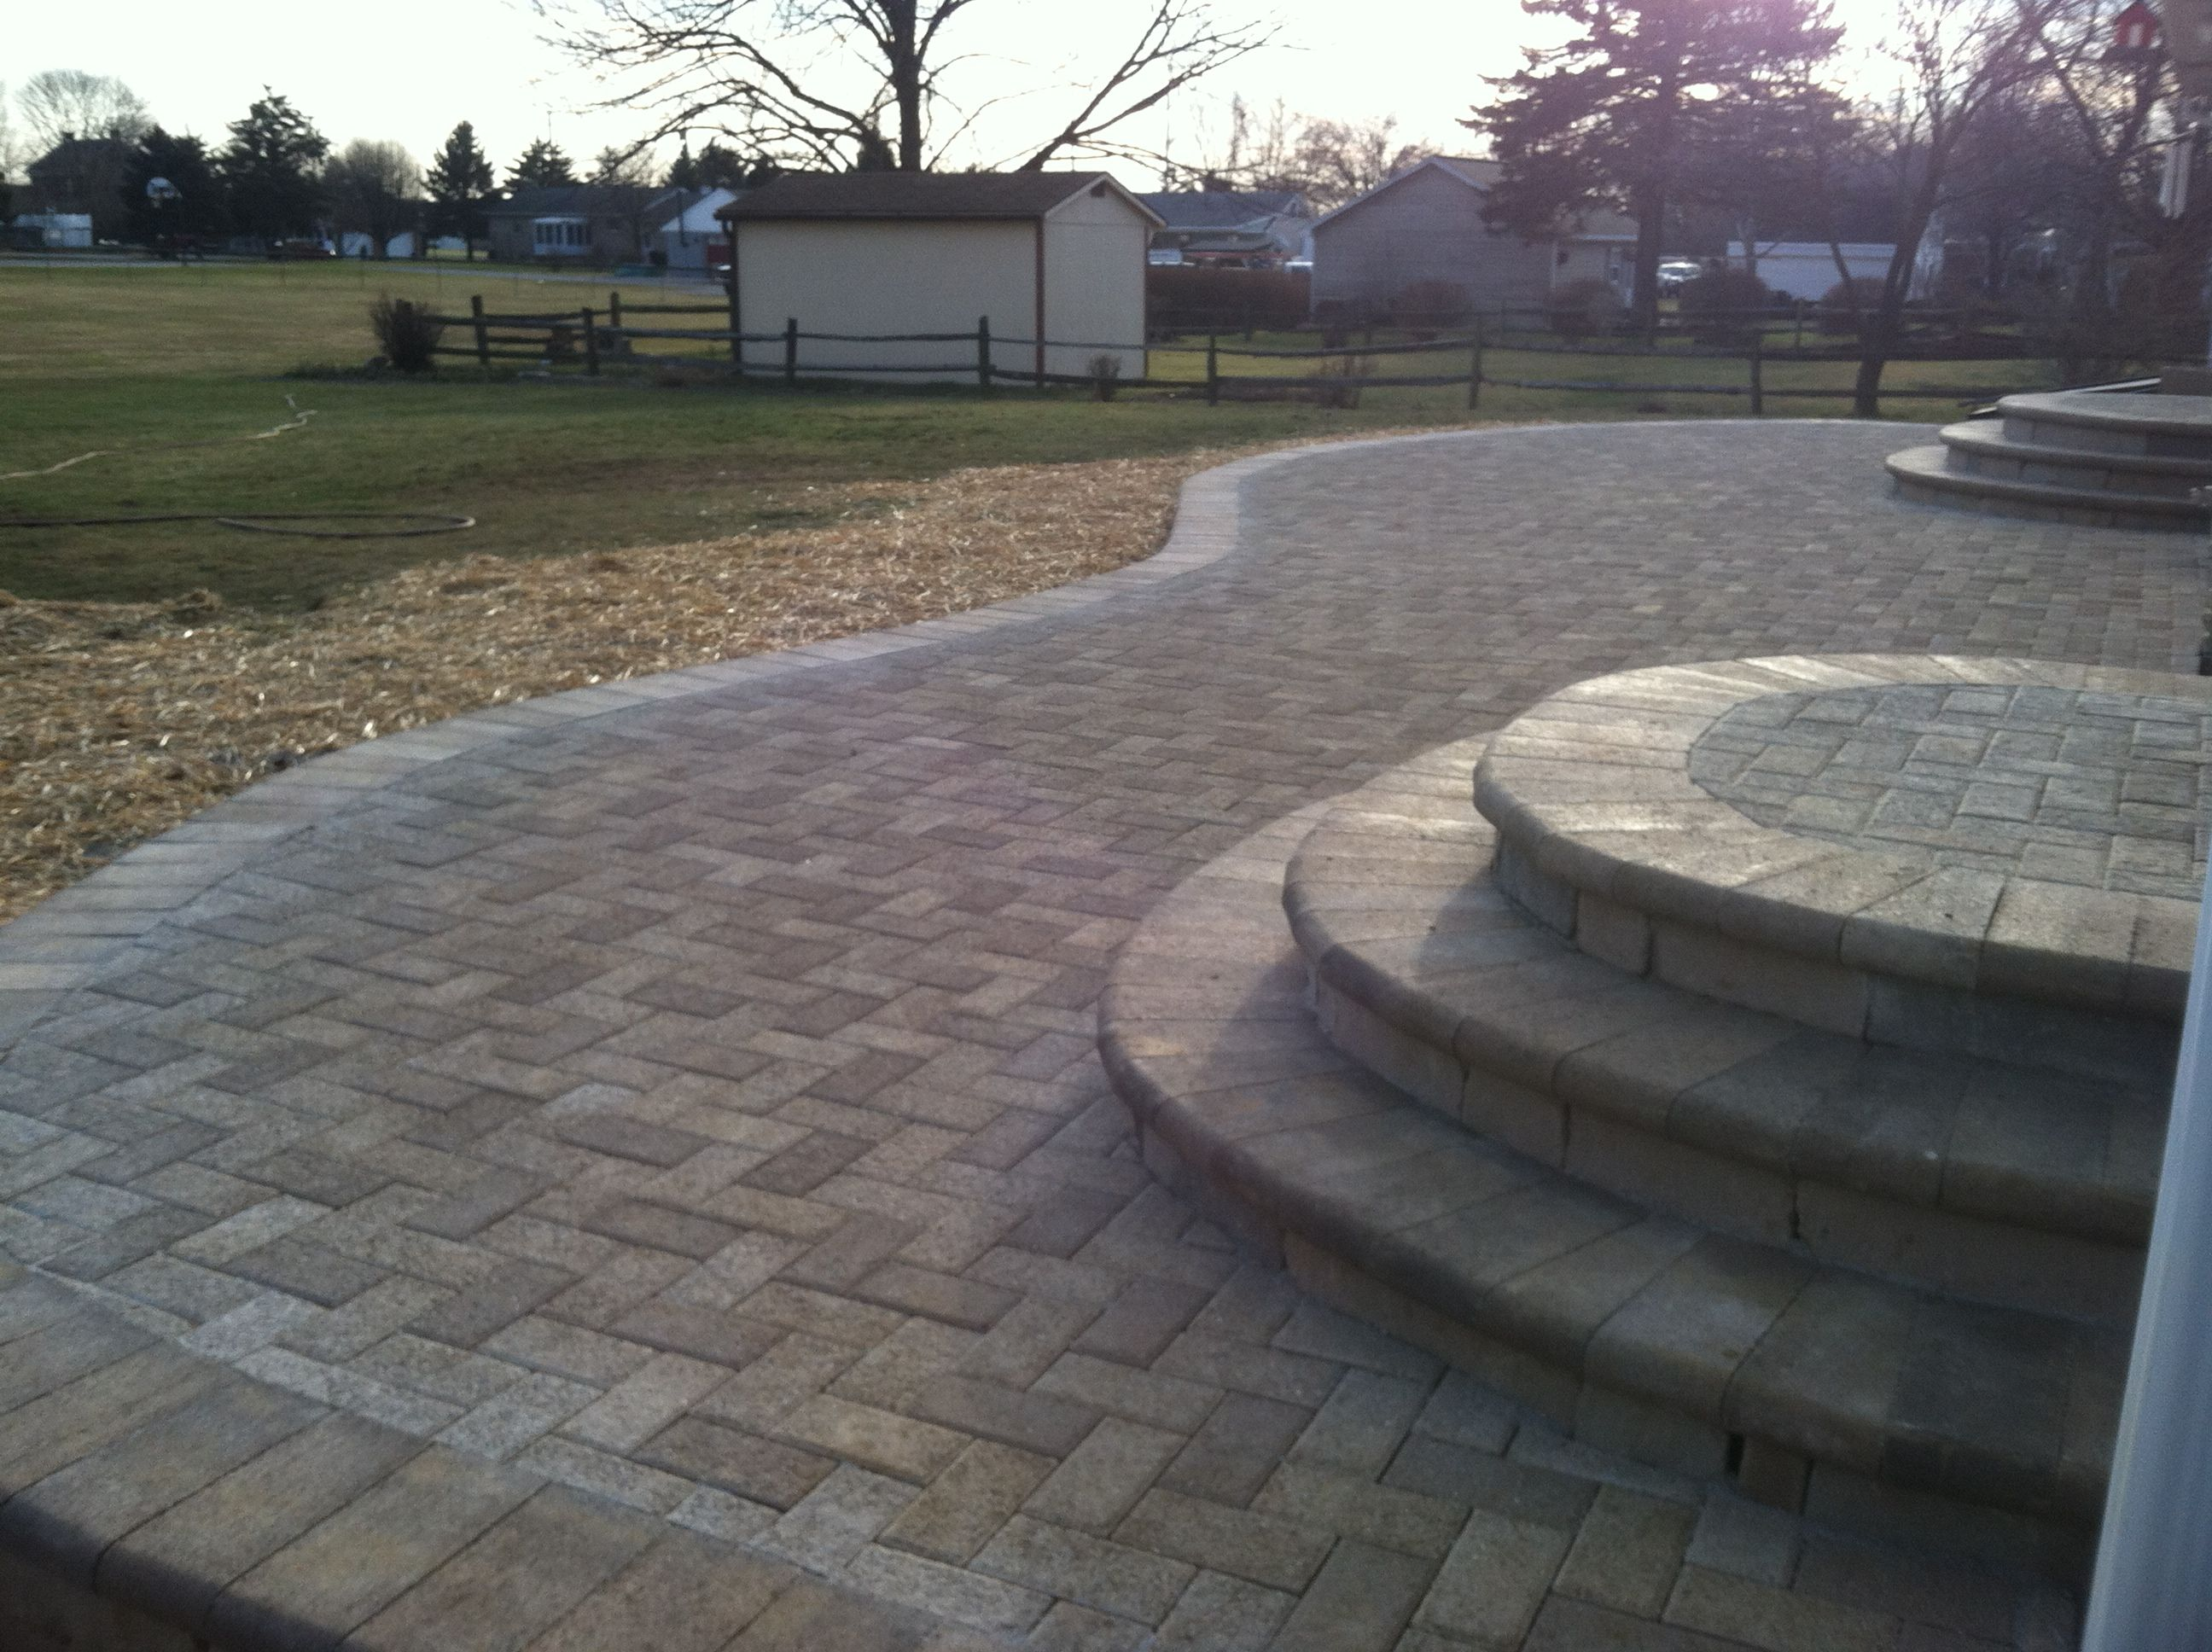 Landscape Construction Of Elevated Hanover Prest Brick Patio With Rounded  Steps Featuring A 90 Degree Herringbone